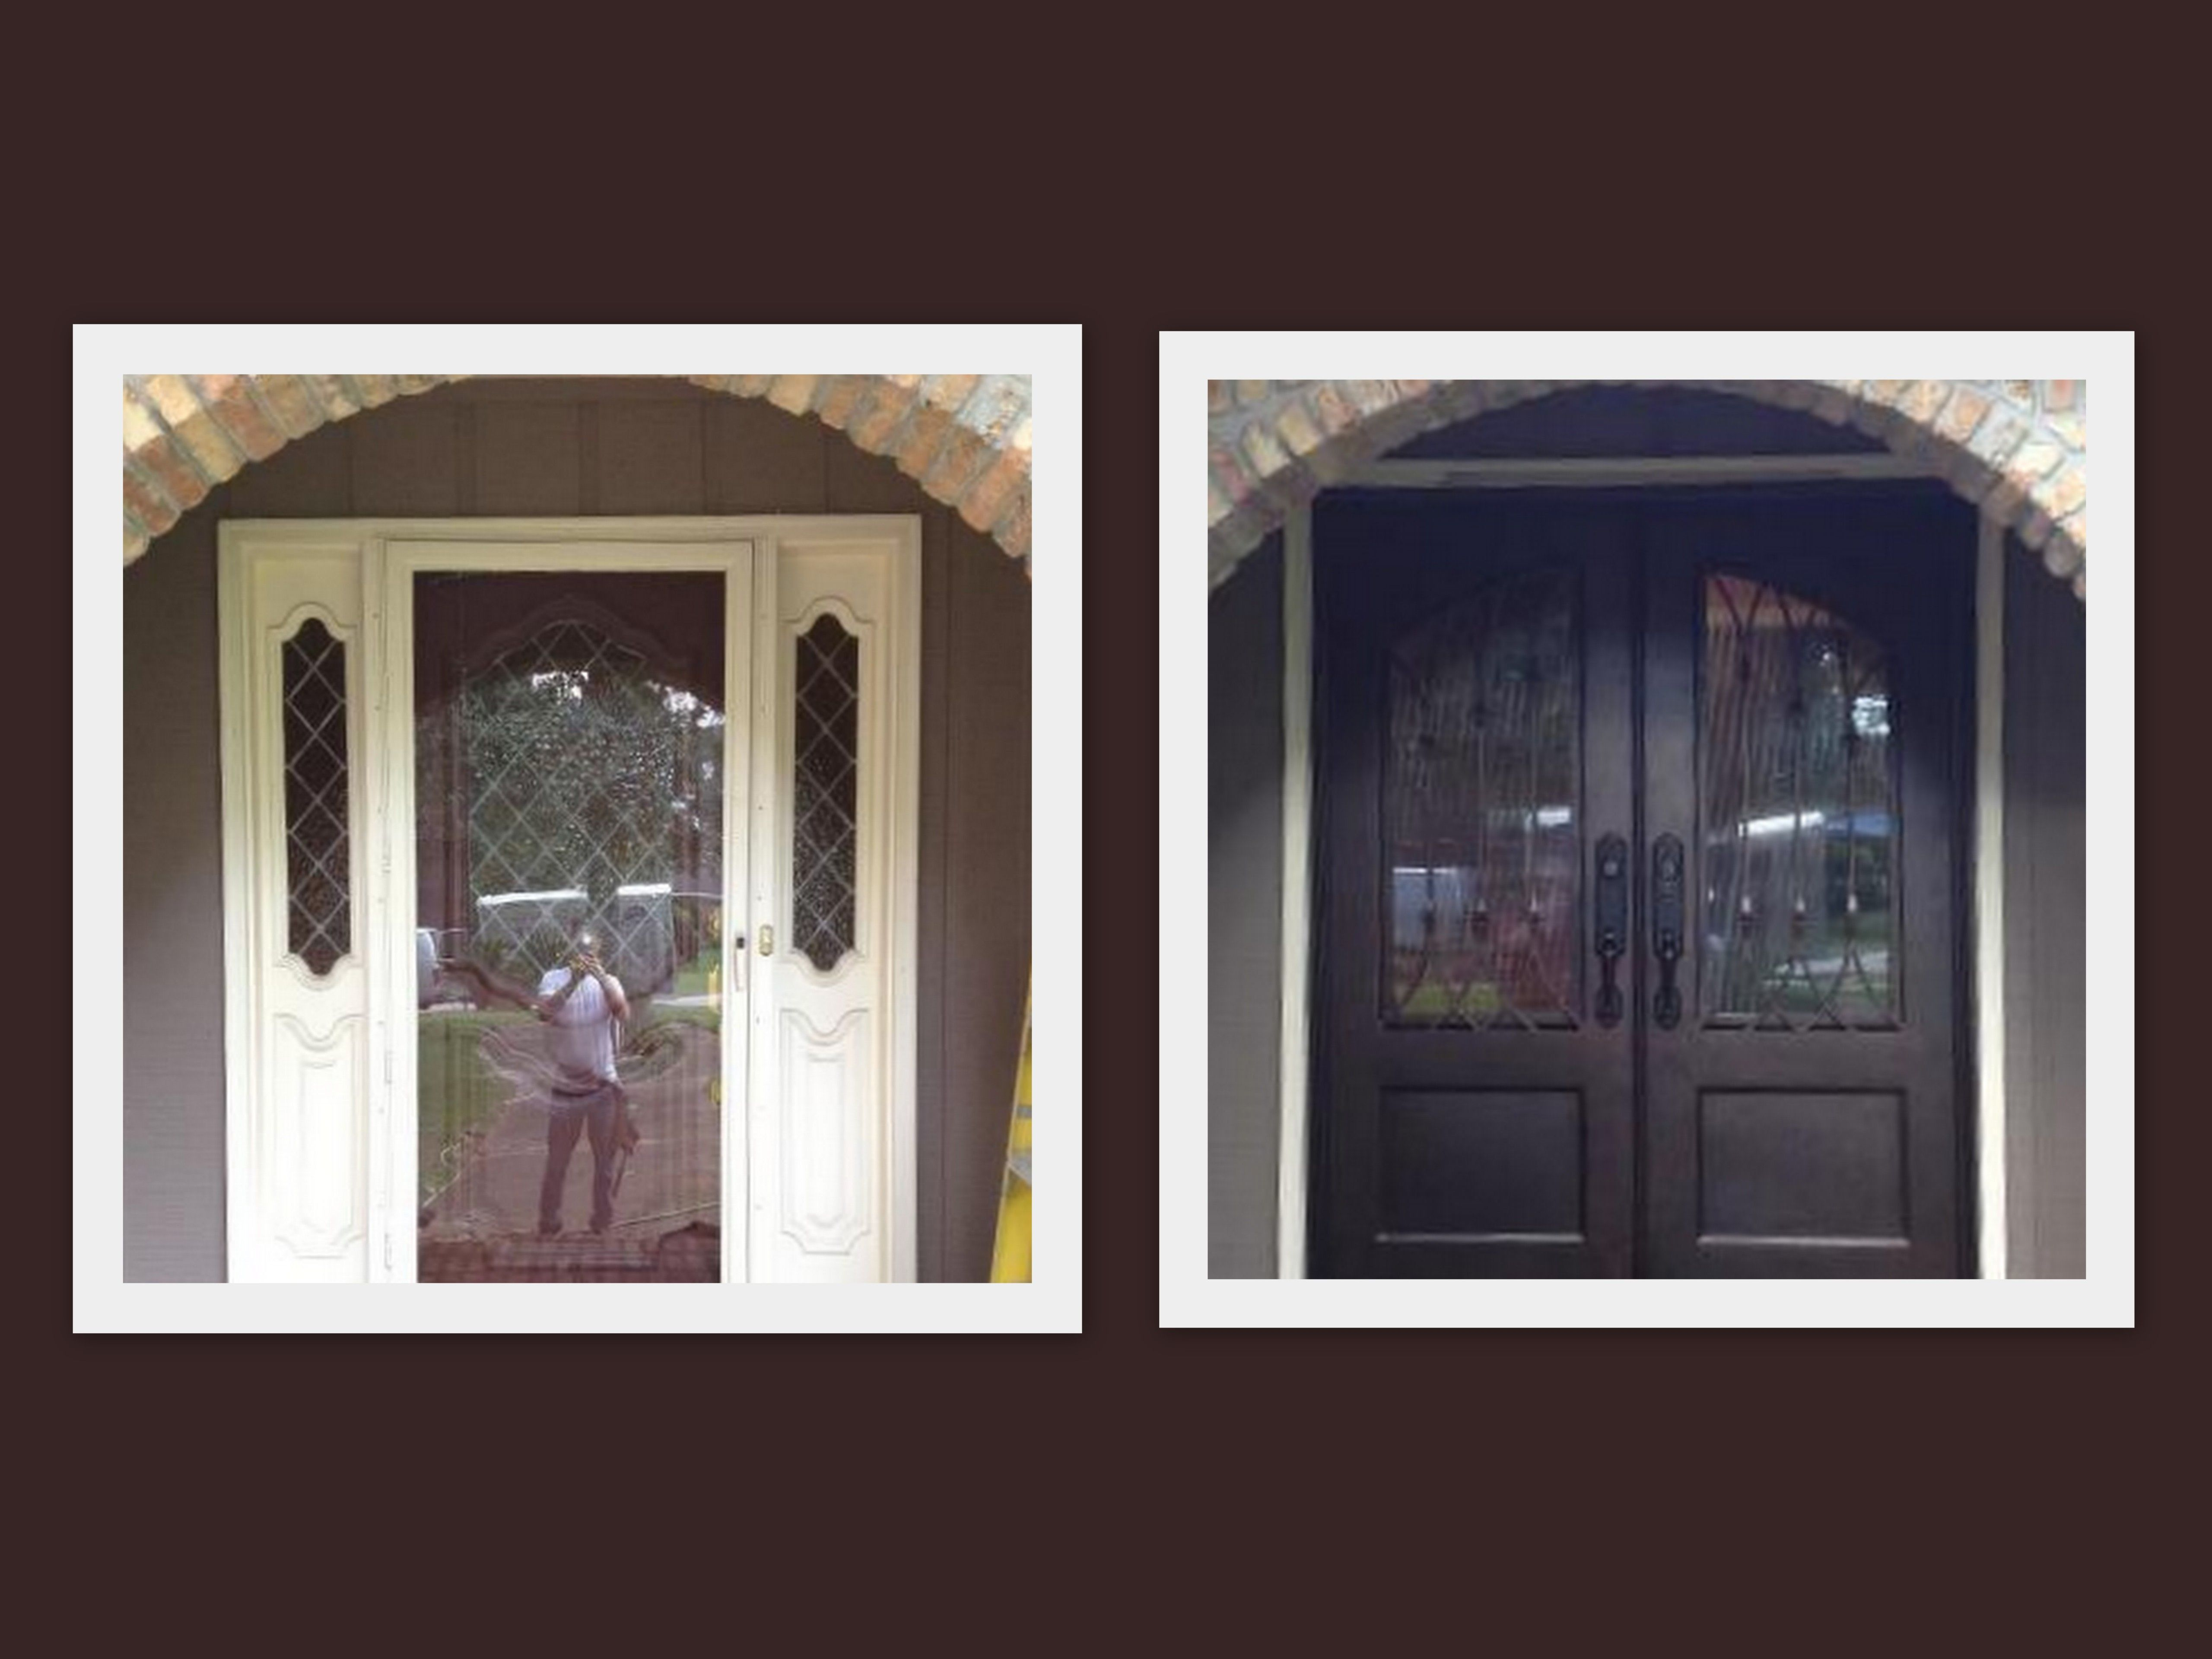 Double front door with sidelights - Love This Transition From A Single Wood Door With Sidelights To A Beautiful Double Iron